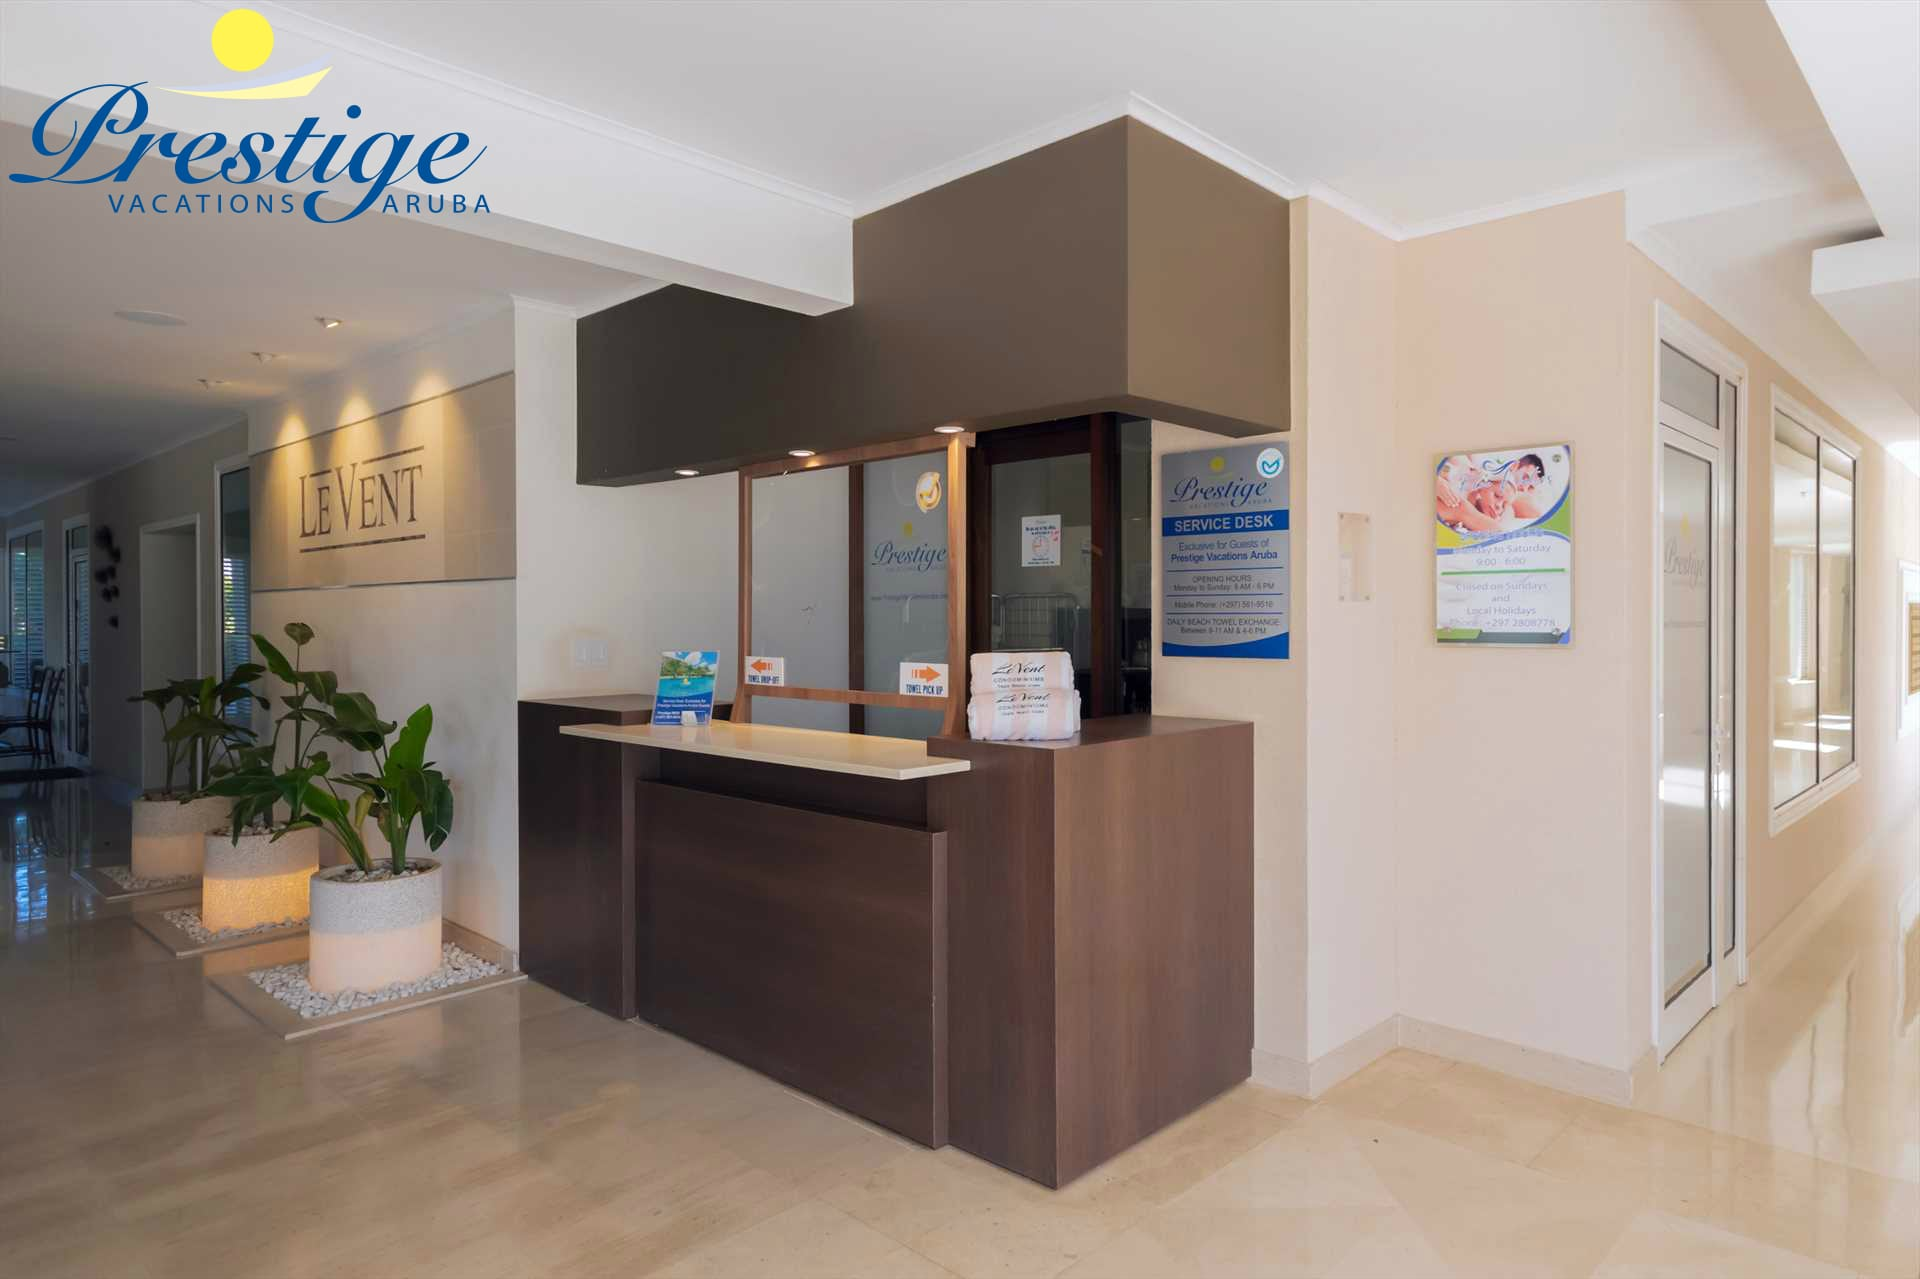 Prestige Vacations Aruba exclusive on-site Service desk in the lobby of the resort